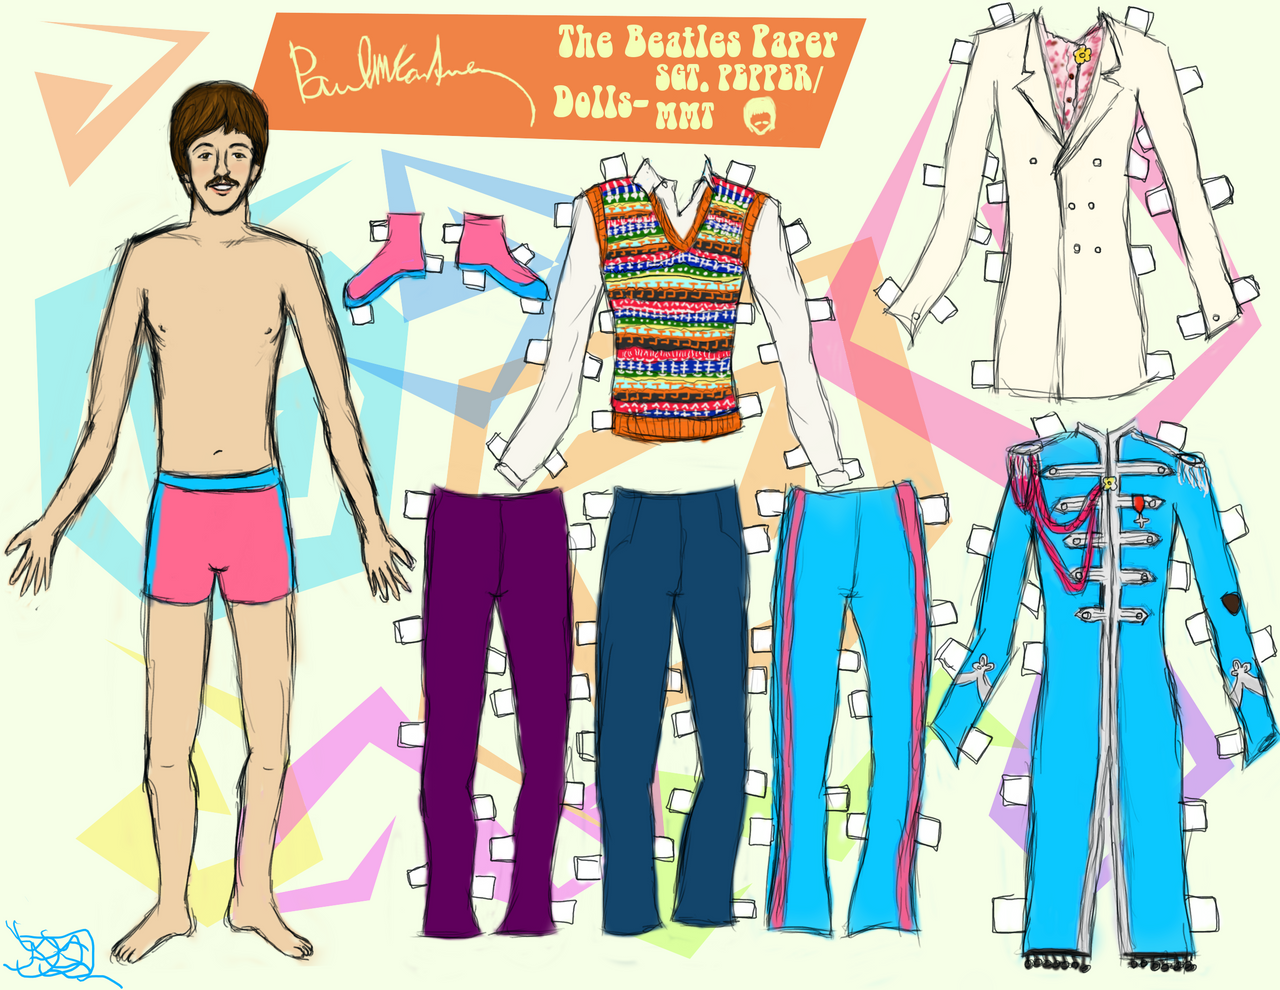 paul_mccartney_paper_doll_2_by_89000007anl-d548kog.png